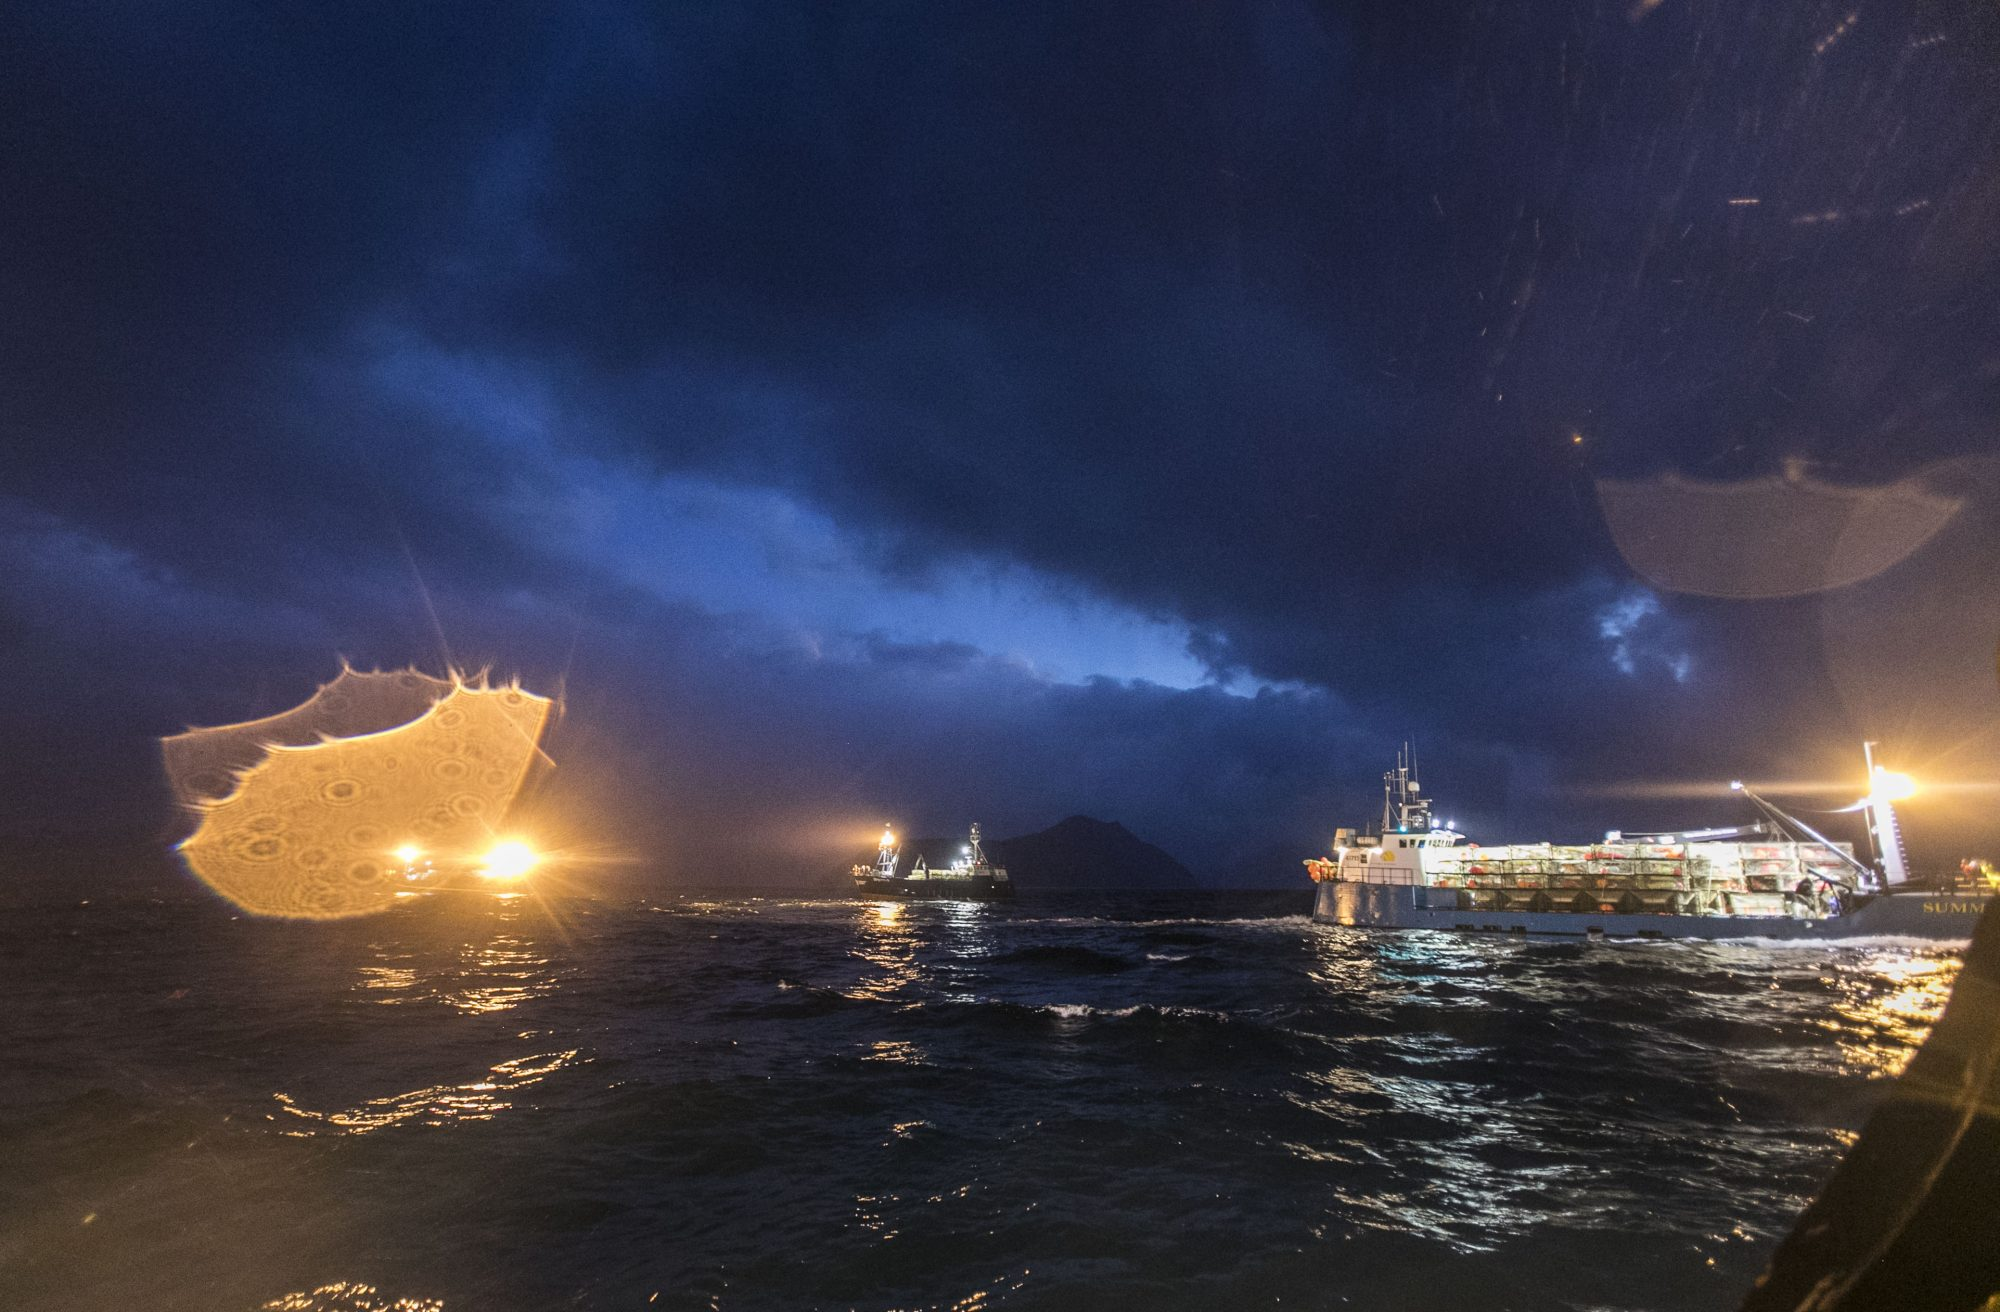 alaska-ships-night-FTBLOG1217.jpg